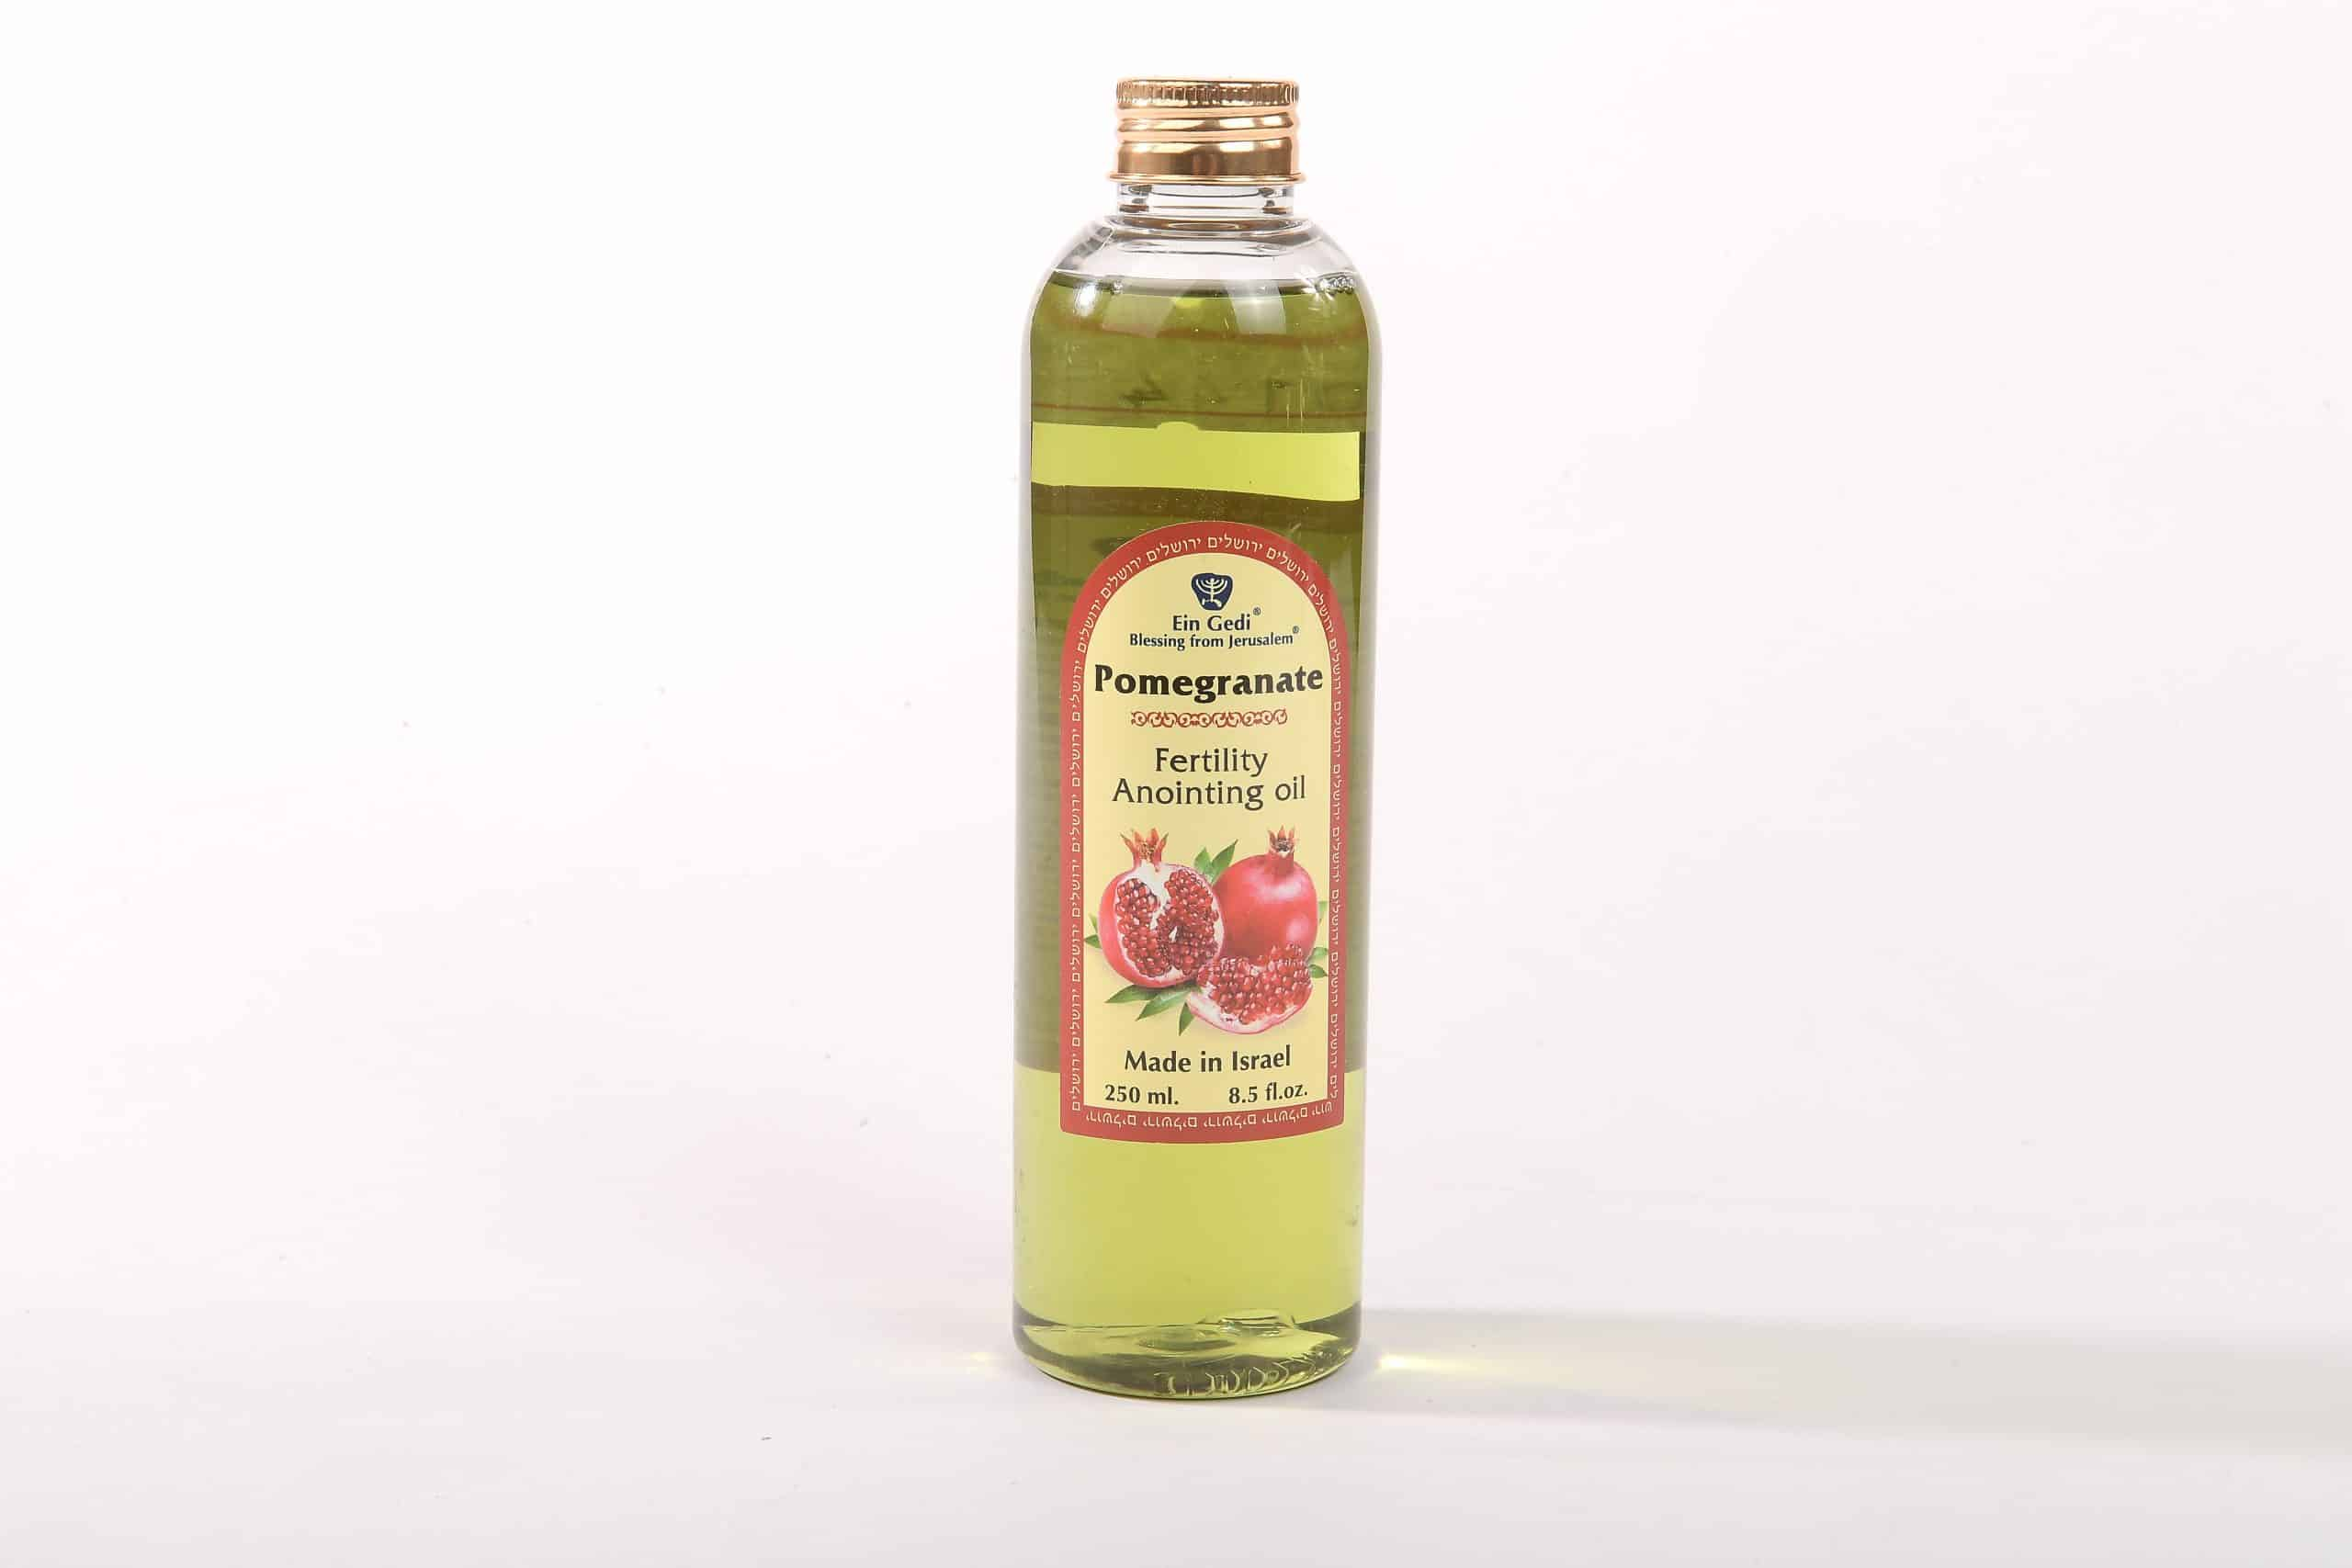 Pomegranate Anointing Oil - Fertility - Made in Israel - 250ml